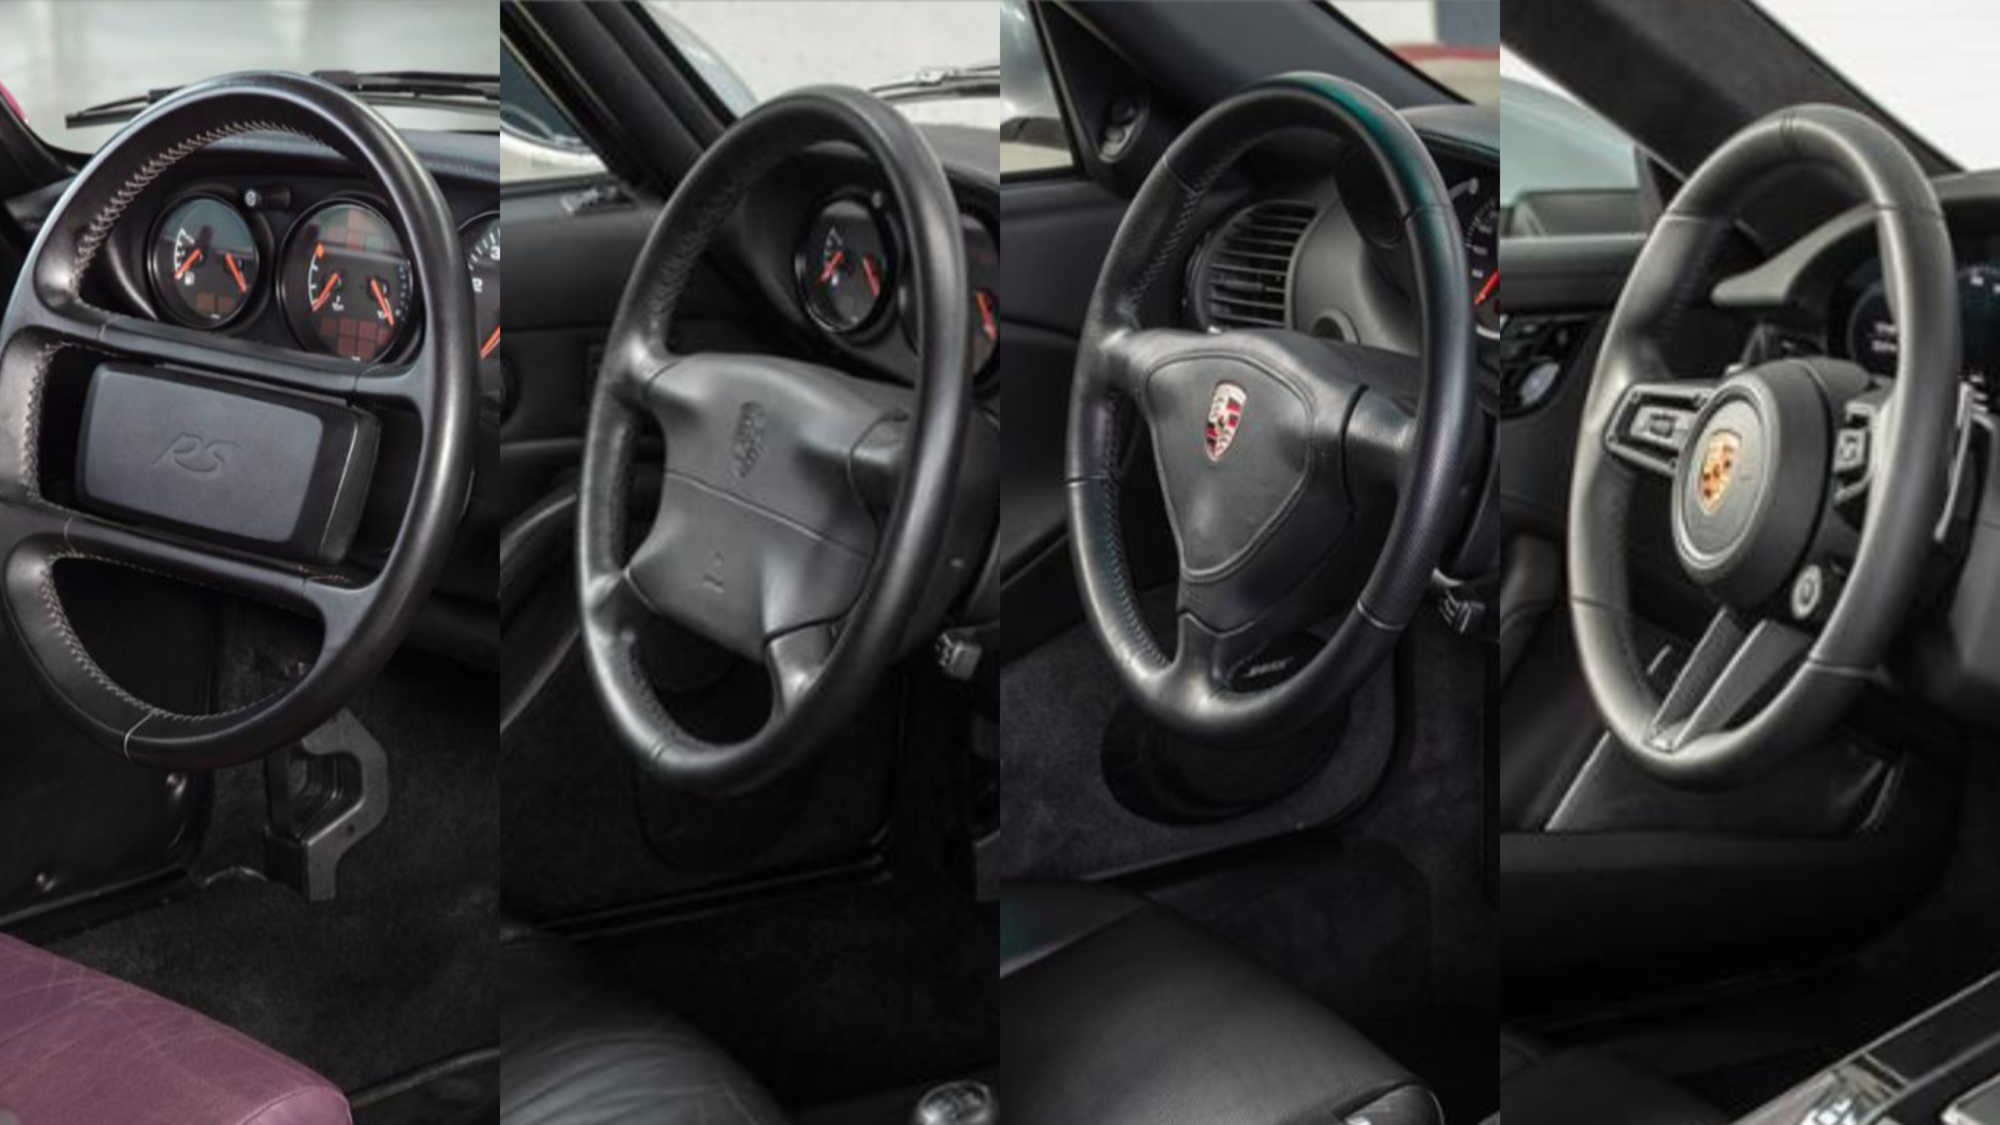 The generations of the 911 steering wheels